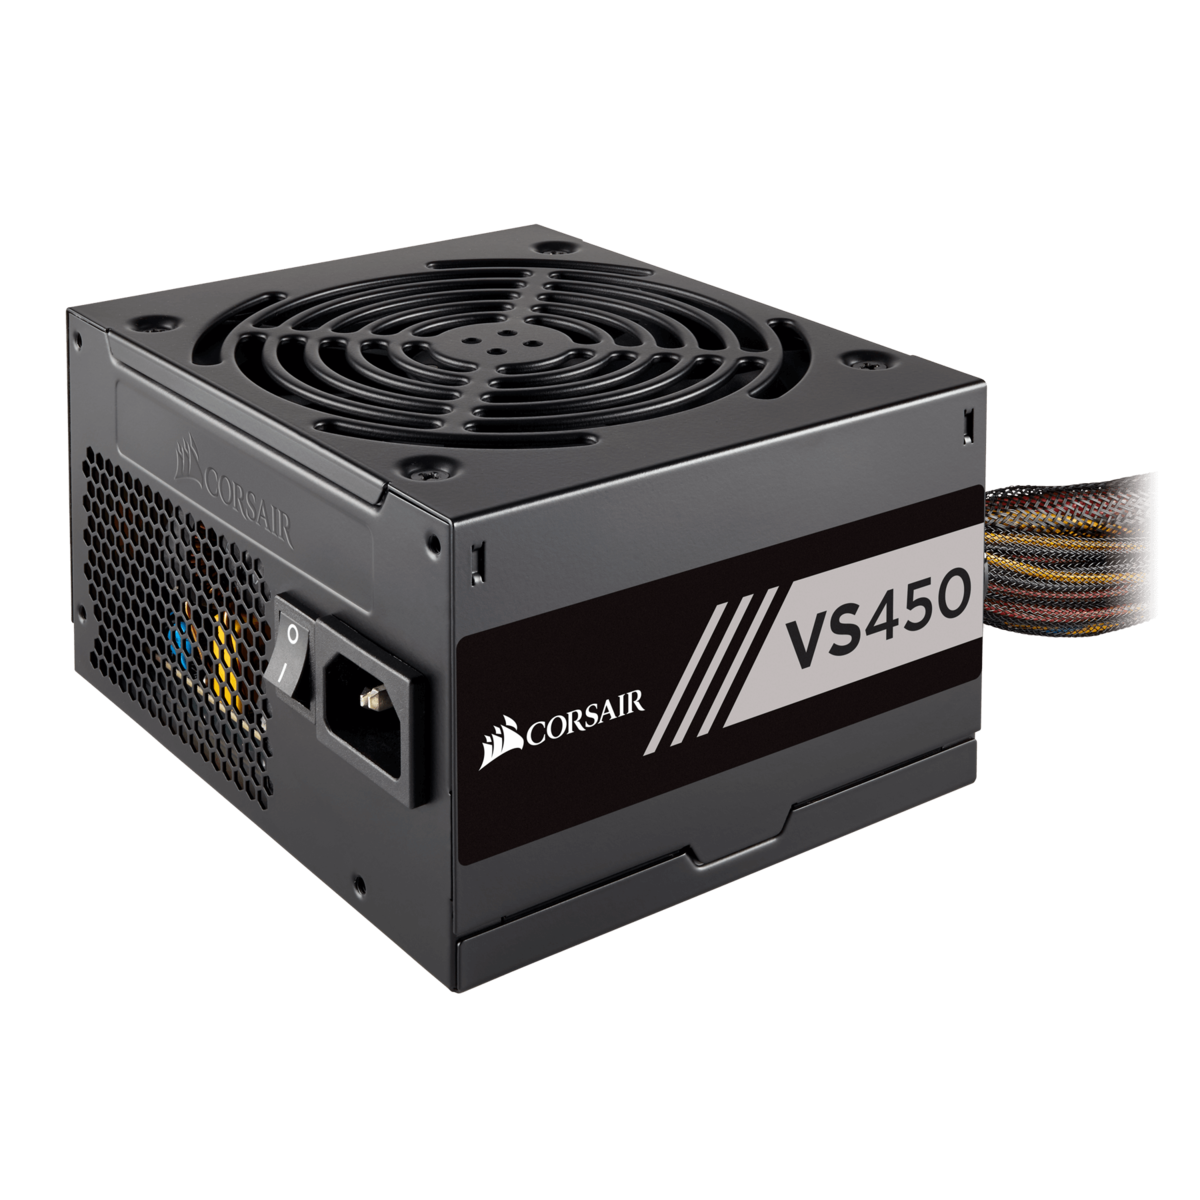 https://www.corsair.com/medias/sys_master/images/images/hd1/h09/9112423399454/-CP-9020170-NA-Gallery-VS450-PSU-05.png